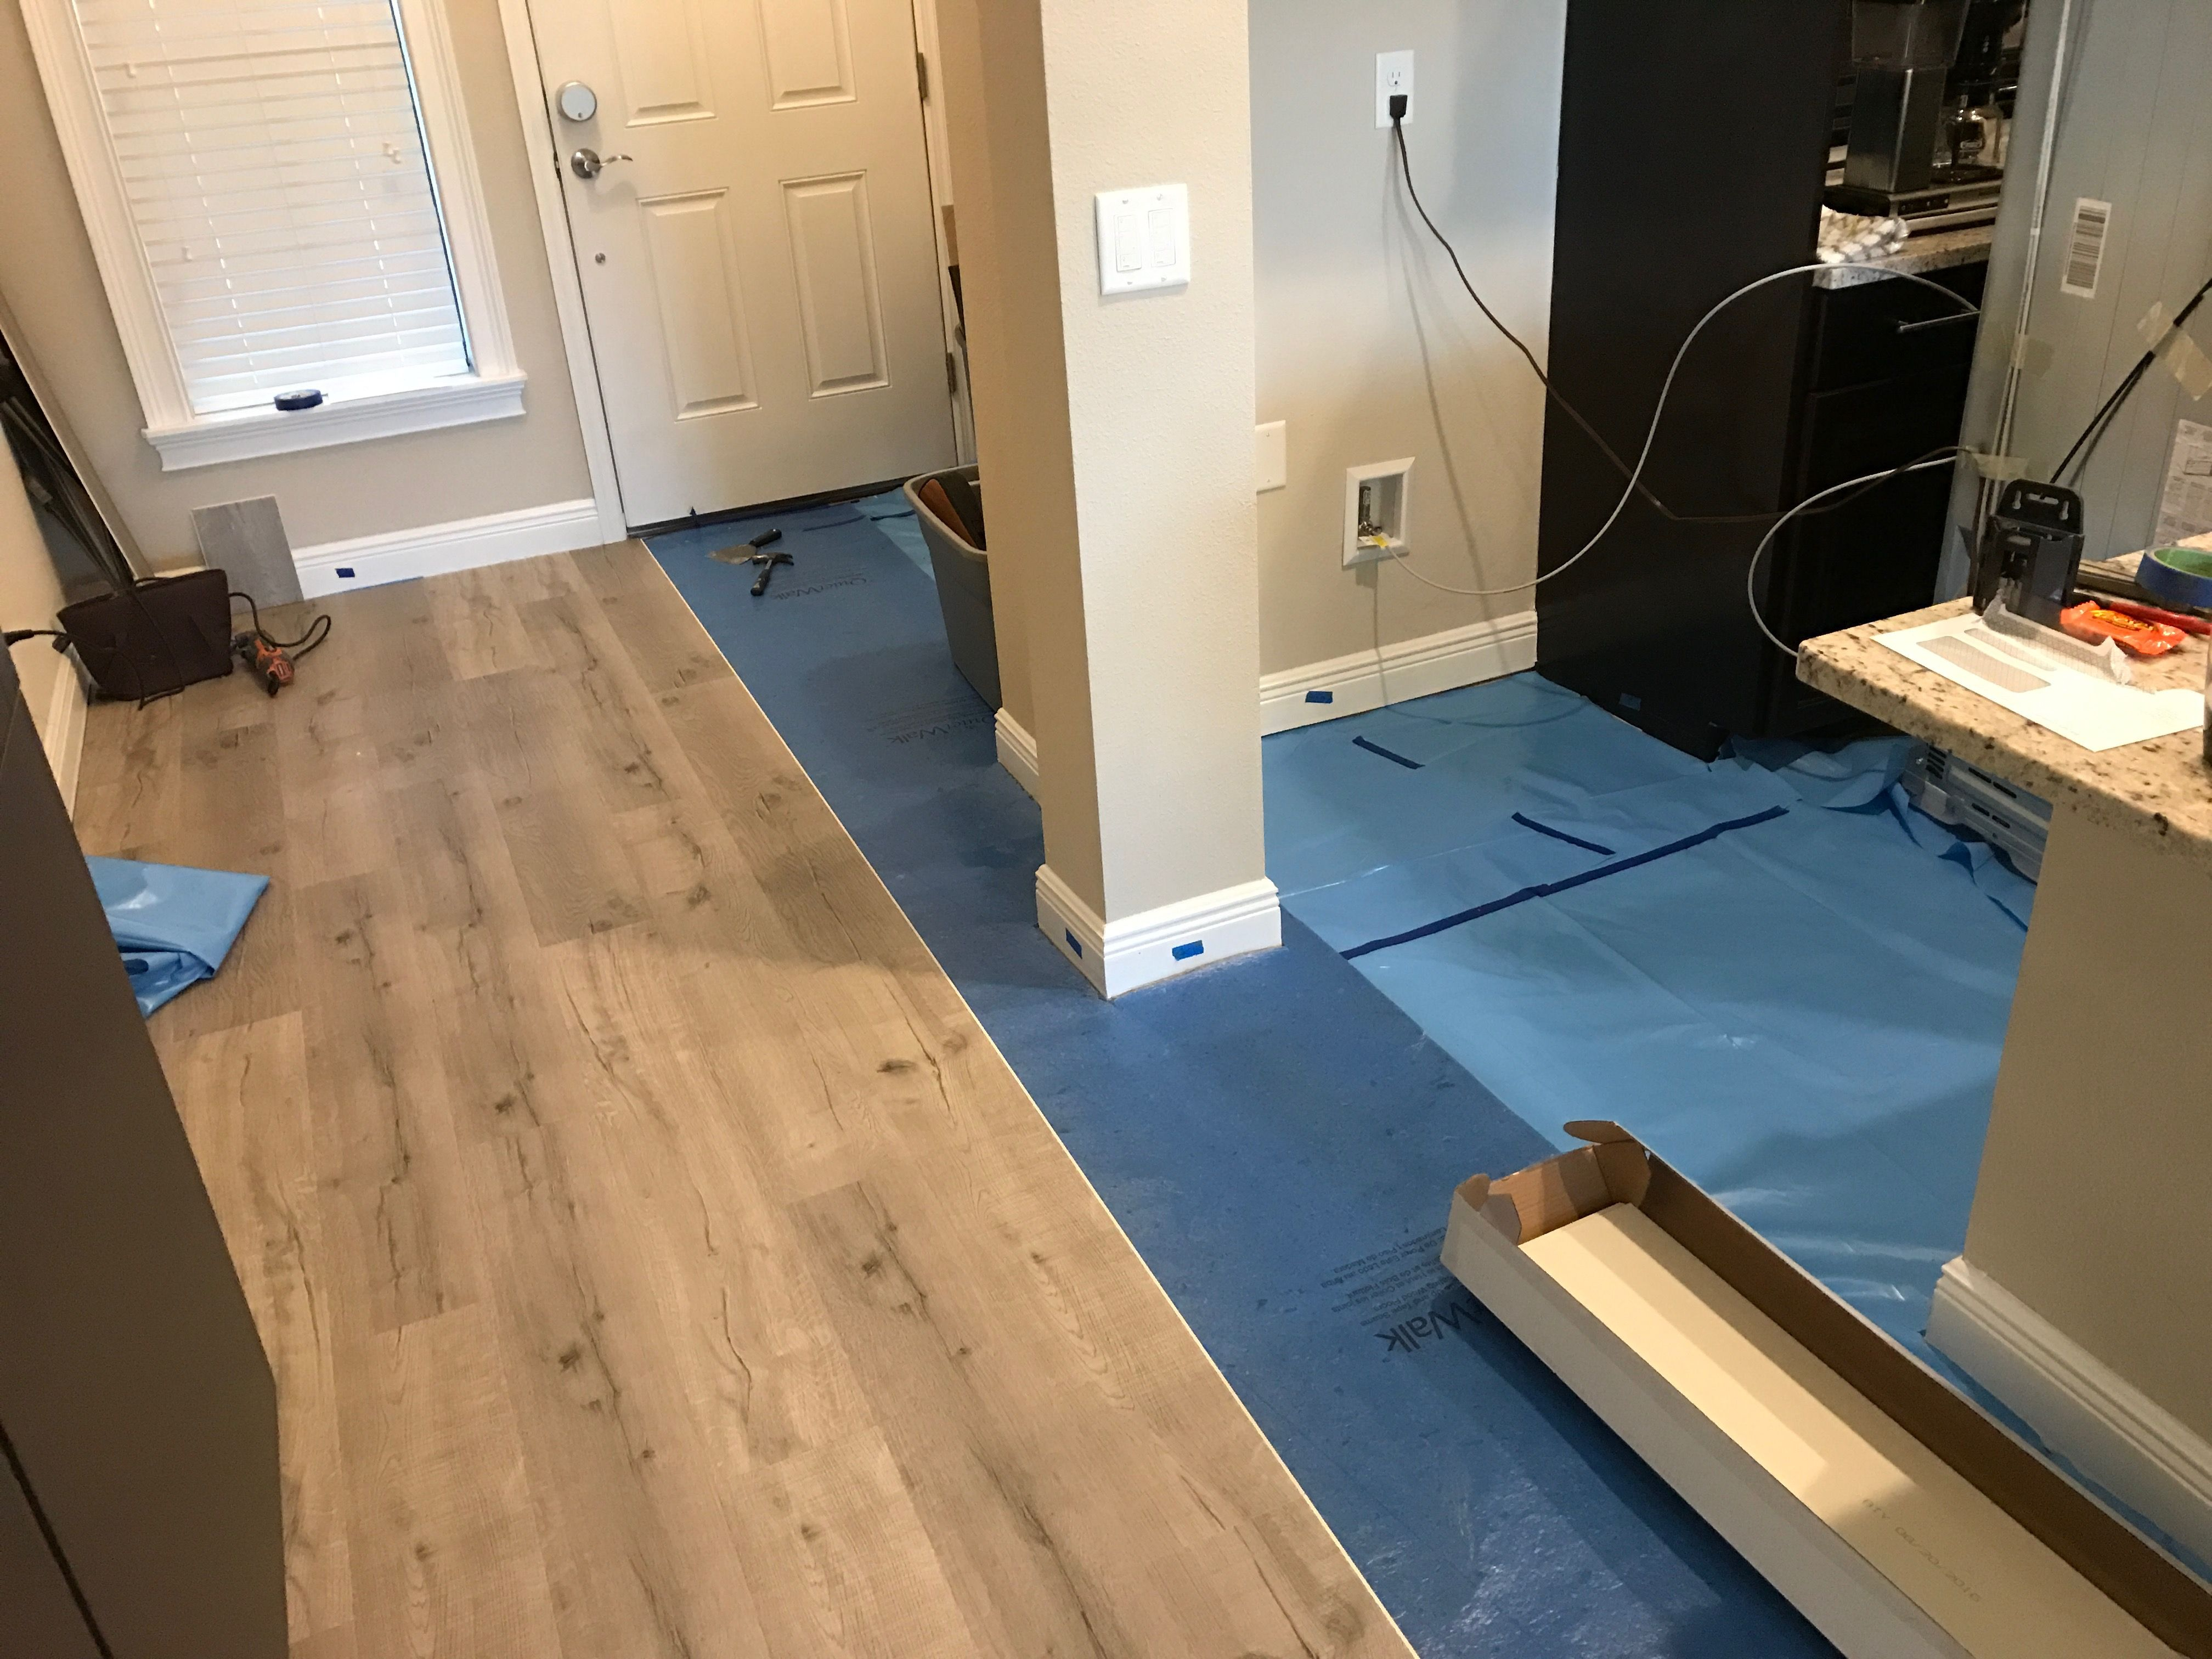 7mm Evp Vinyl Plank Flooring Over Existing Ceramic Tile With Moisture Barrier And Thin Pad No Separation And N Vinyl Plank Vinyl Plank Flooring Plank Flooring